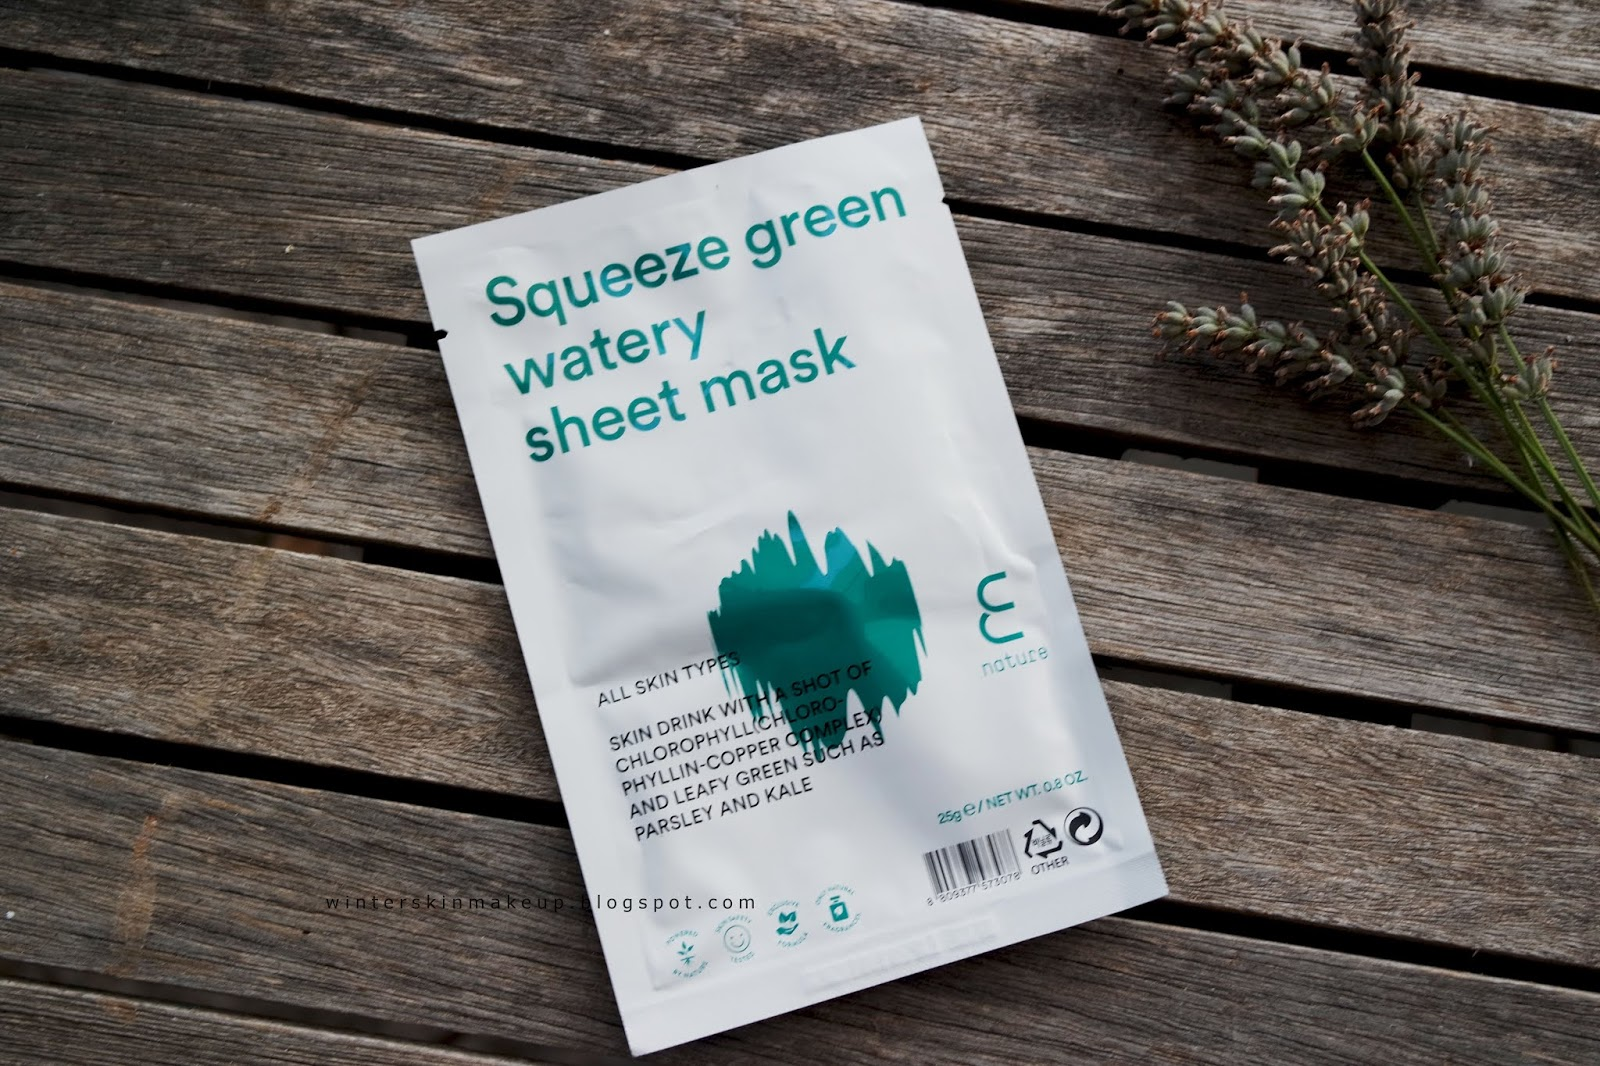 Enature Squeeze Green Watery Sheet Mask & Moringa Cleansing balm